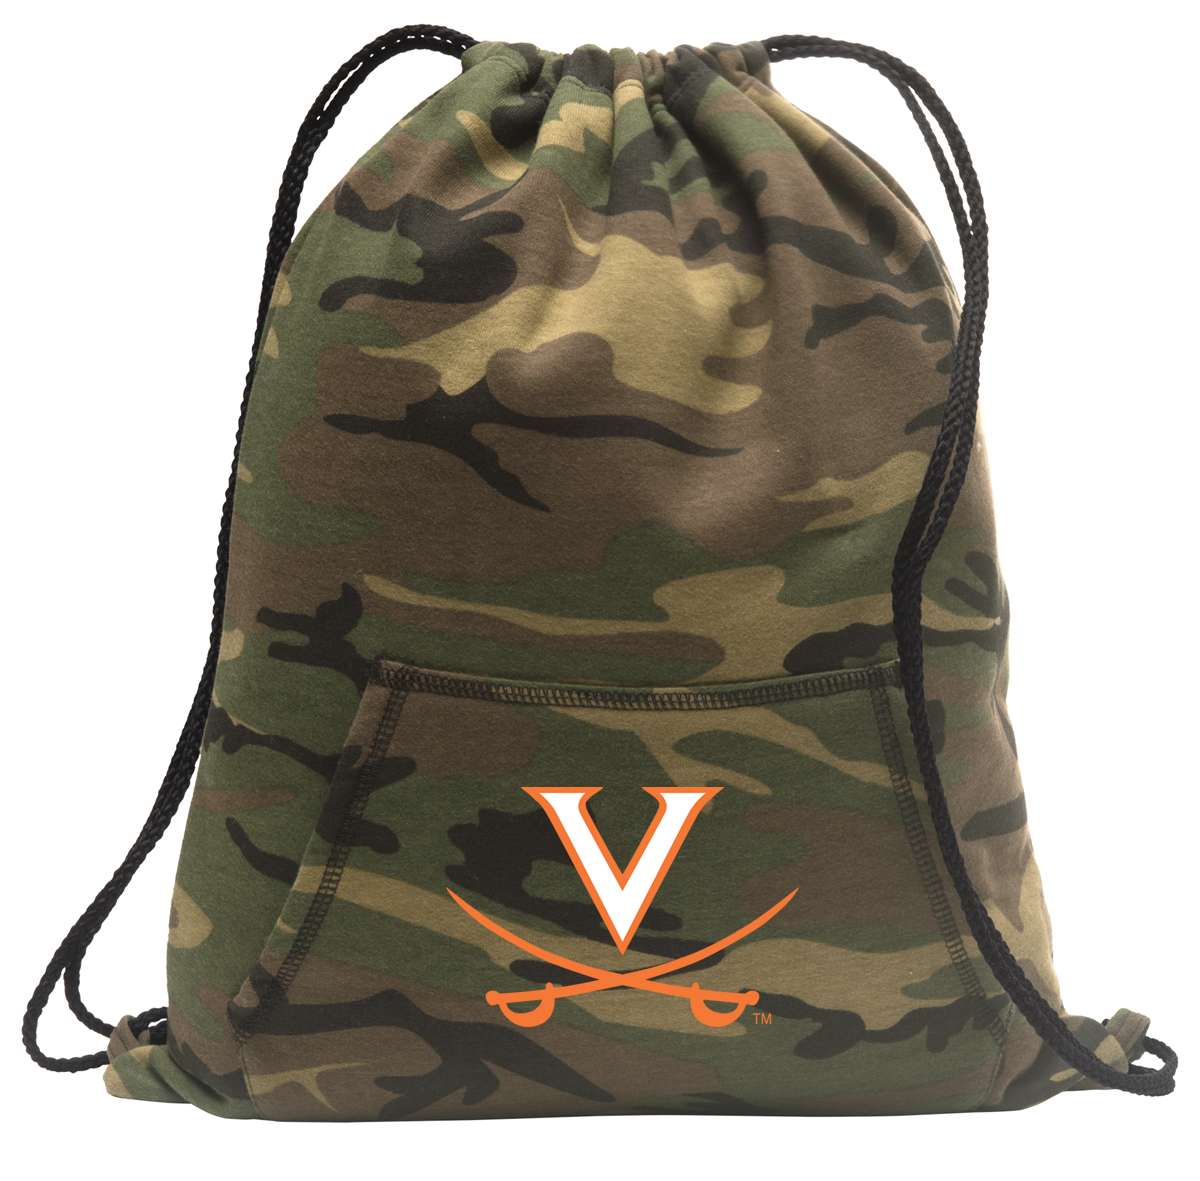 University of Virginia Drawstring Bag Camo University of Virginia Backpack Cinch Pack for Boys Girls Men Women